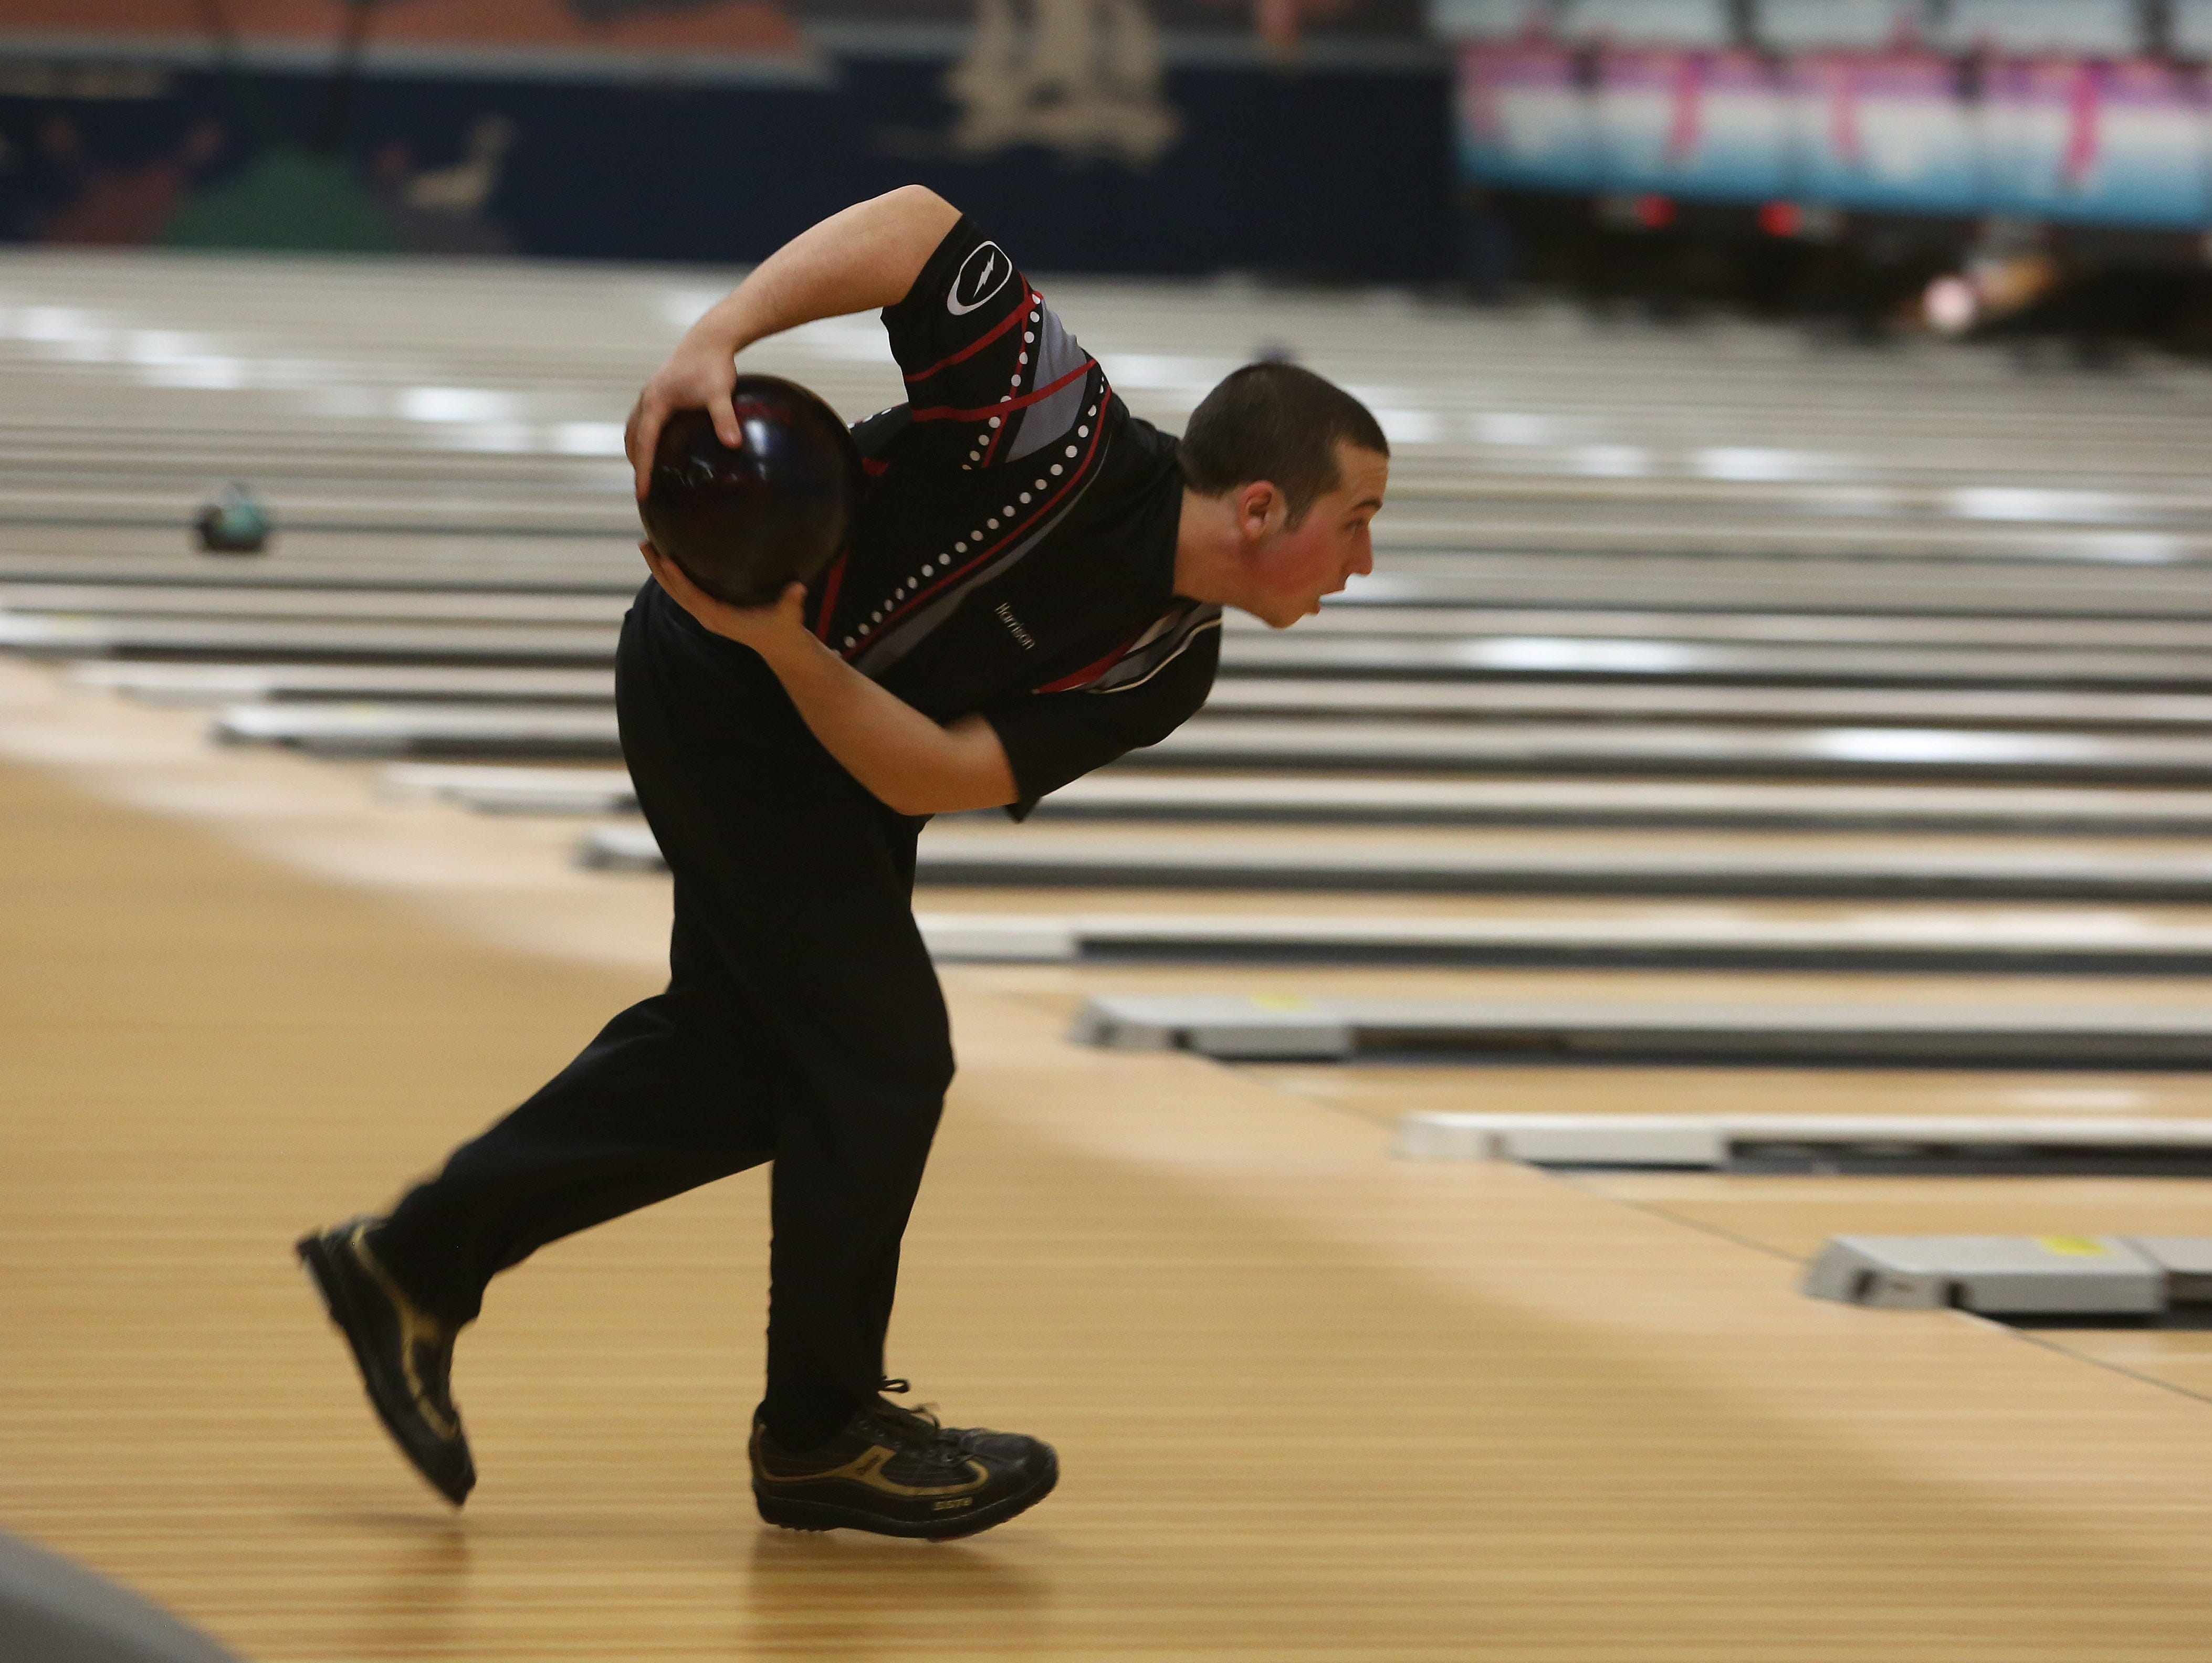 Harrison's Michael DeRenzis became the first two-handed bowler to qualify for states from Section 1 in 2015.